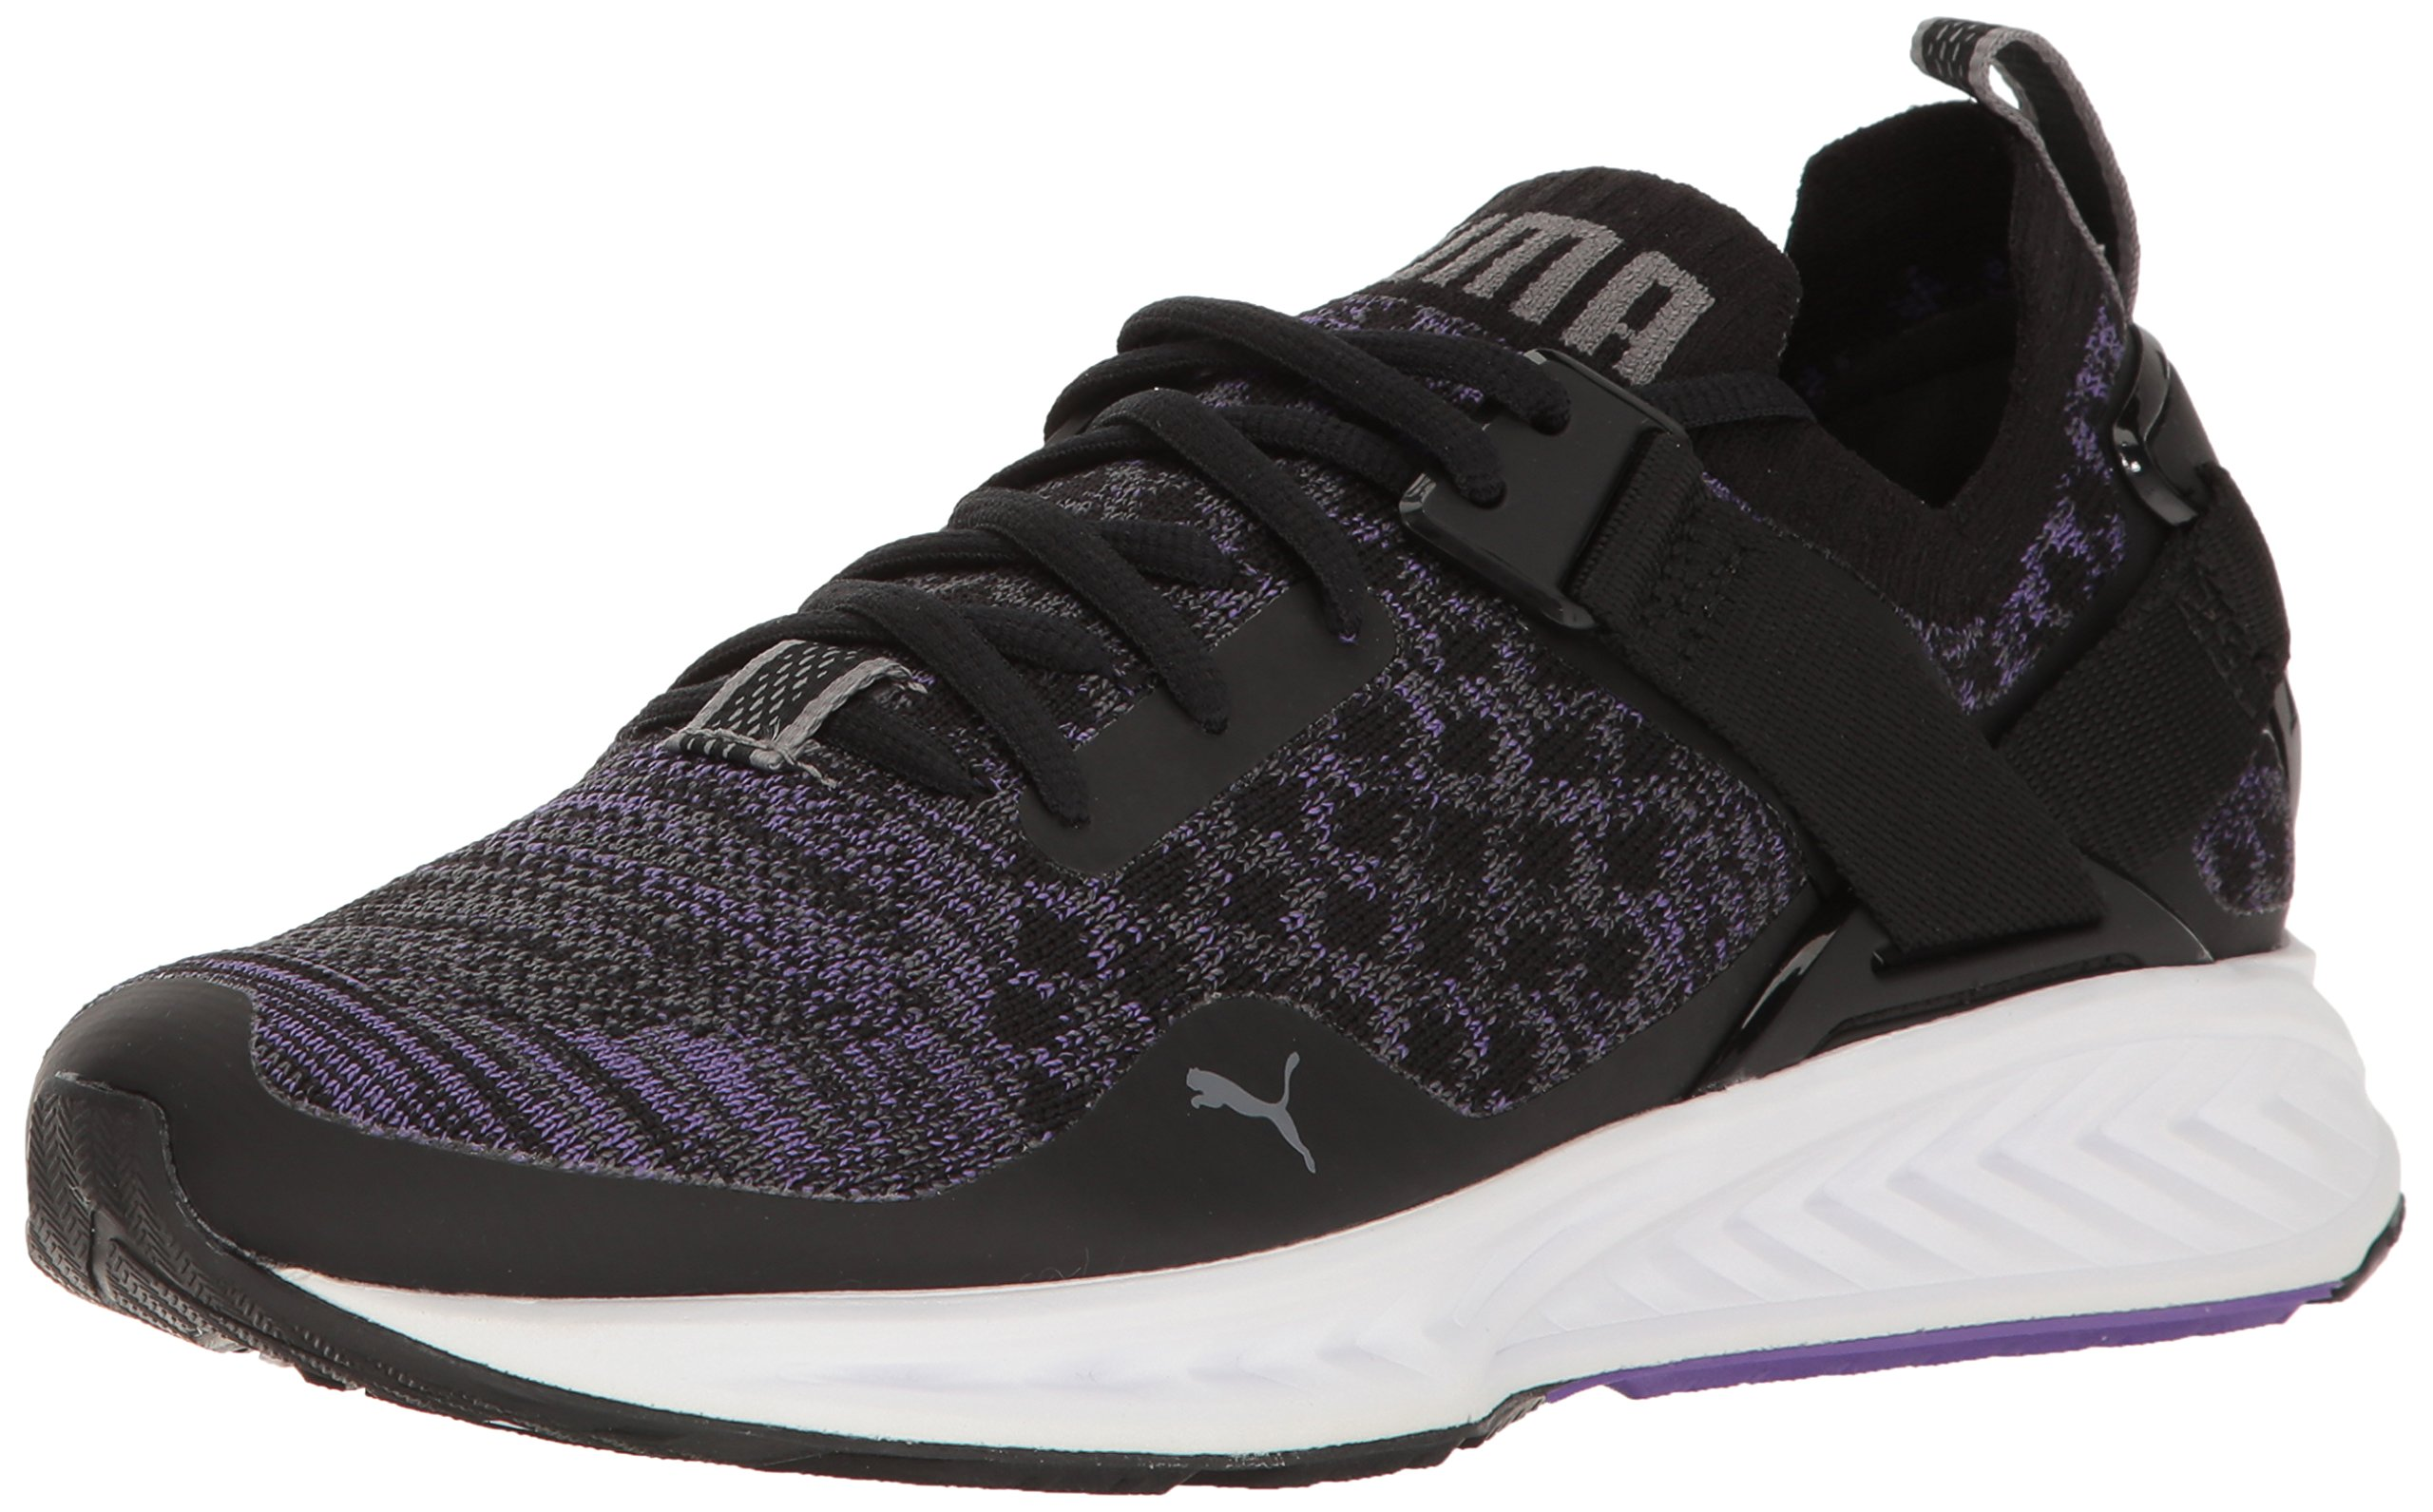 PUMA Women's Ignite Evoknit Lo Wn's Cross-Trainer Shoe, Puma Black-Electric Purple-Quiet Shade, 6.5 M US